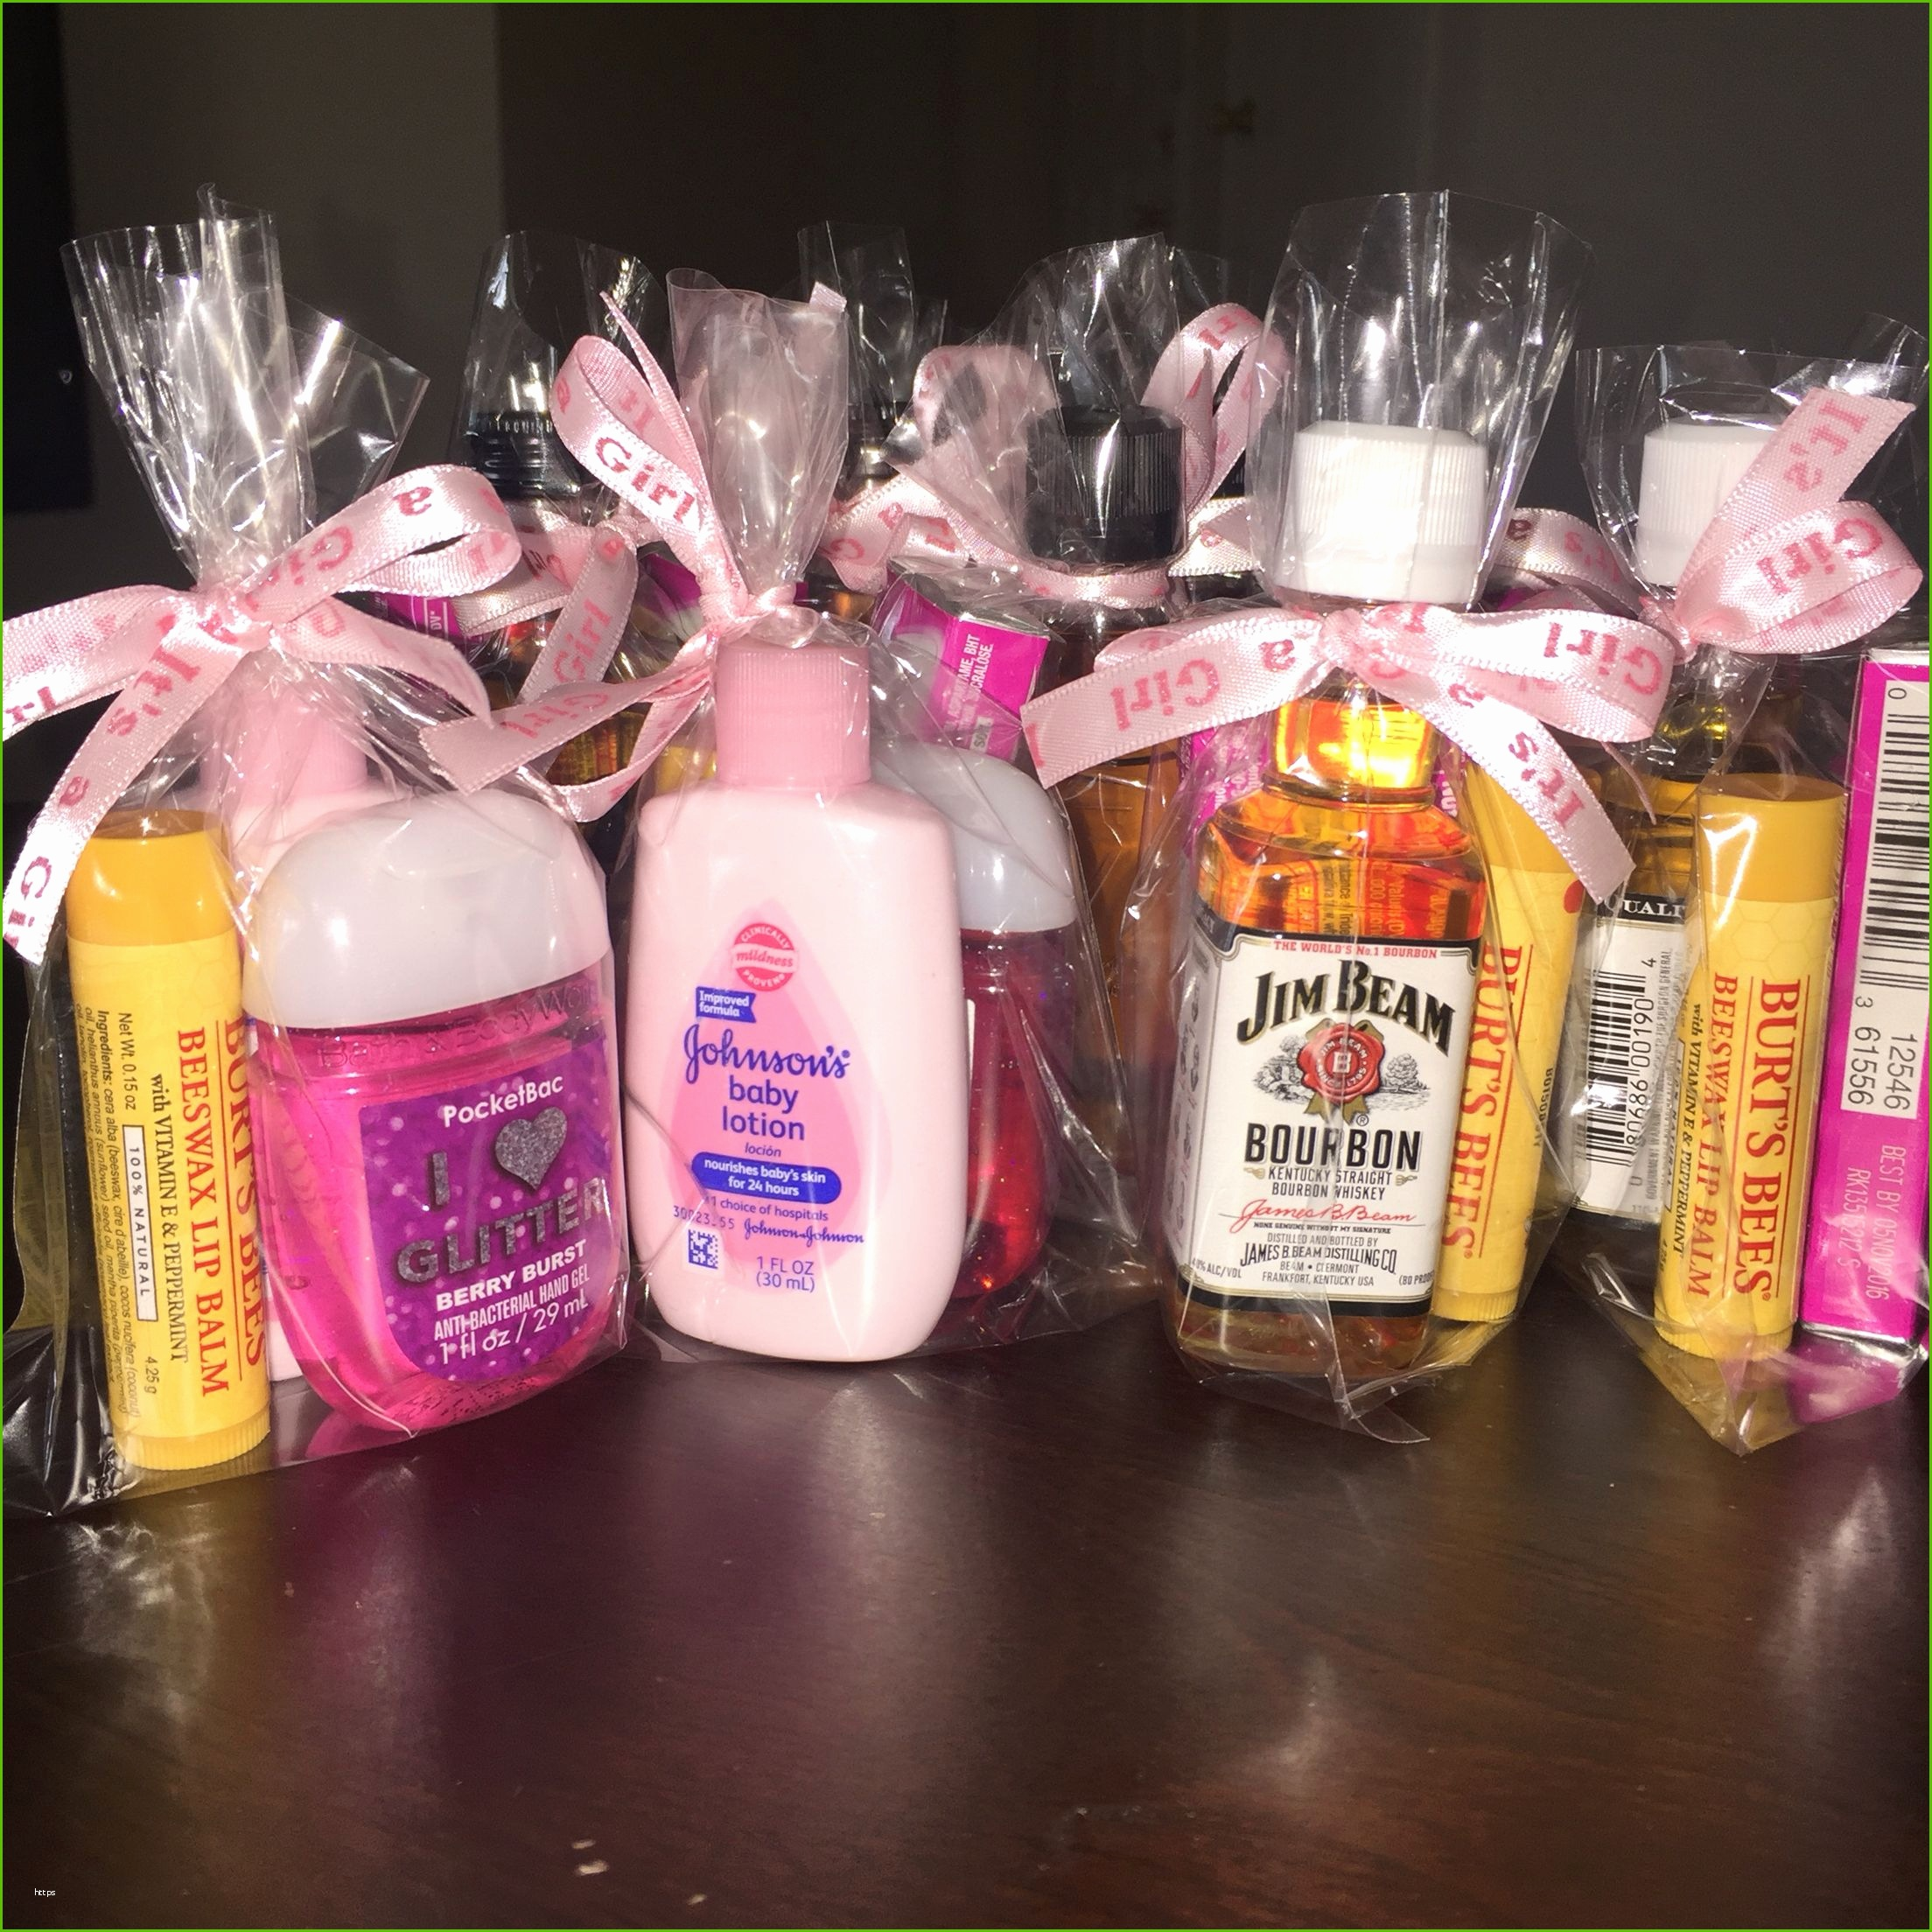 Full Size of Baby Shower:enamour Baby Shower Gifts For Guests Picture Ideas Baby Shower Gifts For Guests As Well As Baby Shower Word Search With Arreglos Baby Shower Niño Plus Baby Shower At The Park Together With Throwing A Baby Shower